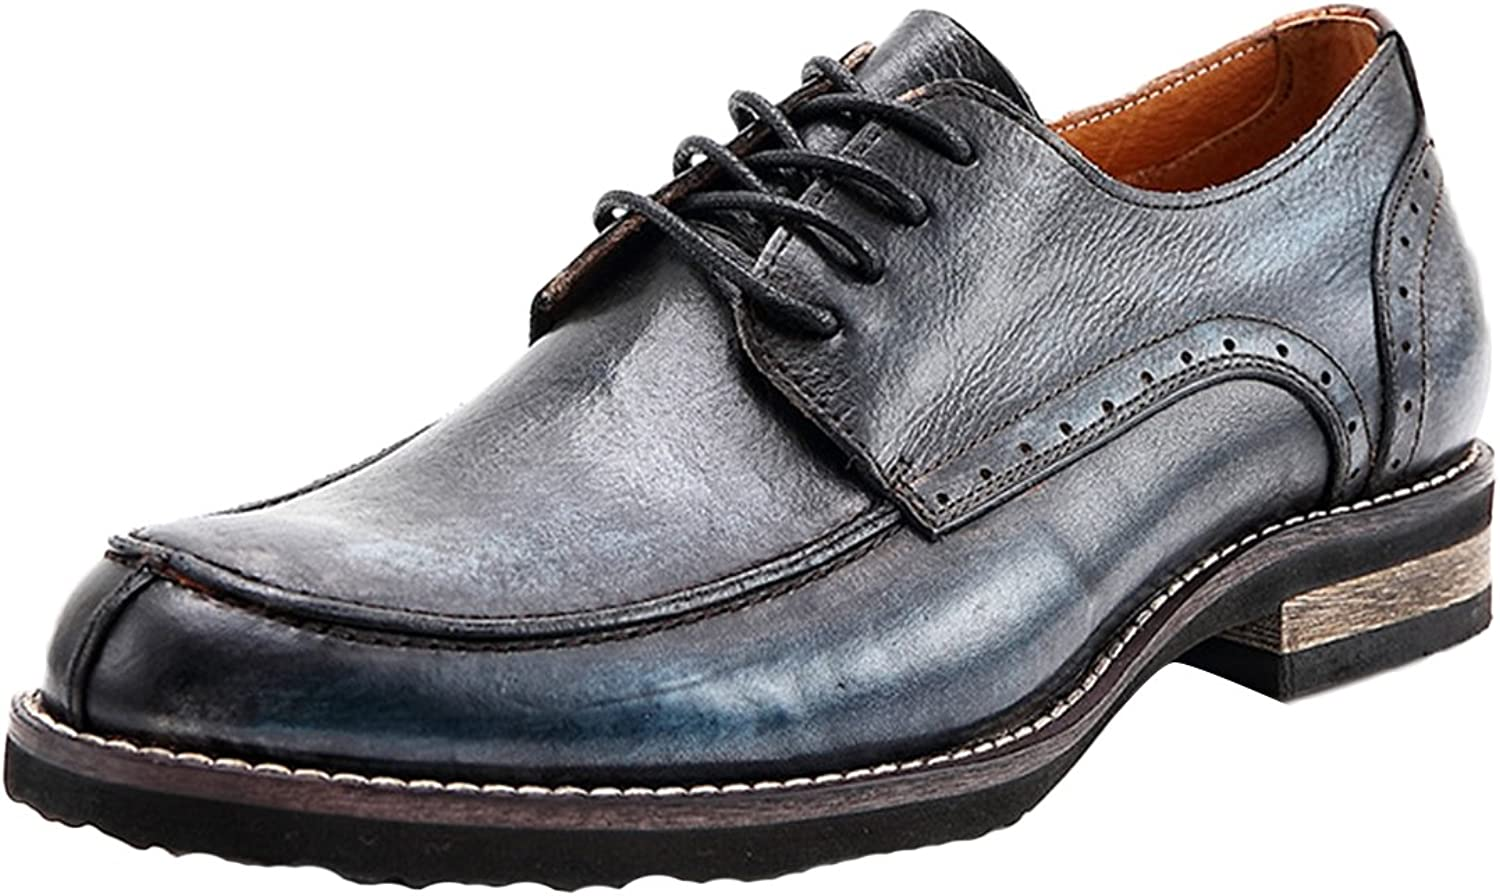 ICEGREY Men Leather Oxford shoes Lace up Slip on Brogue shoes bluee 45